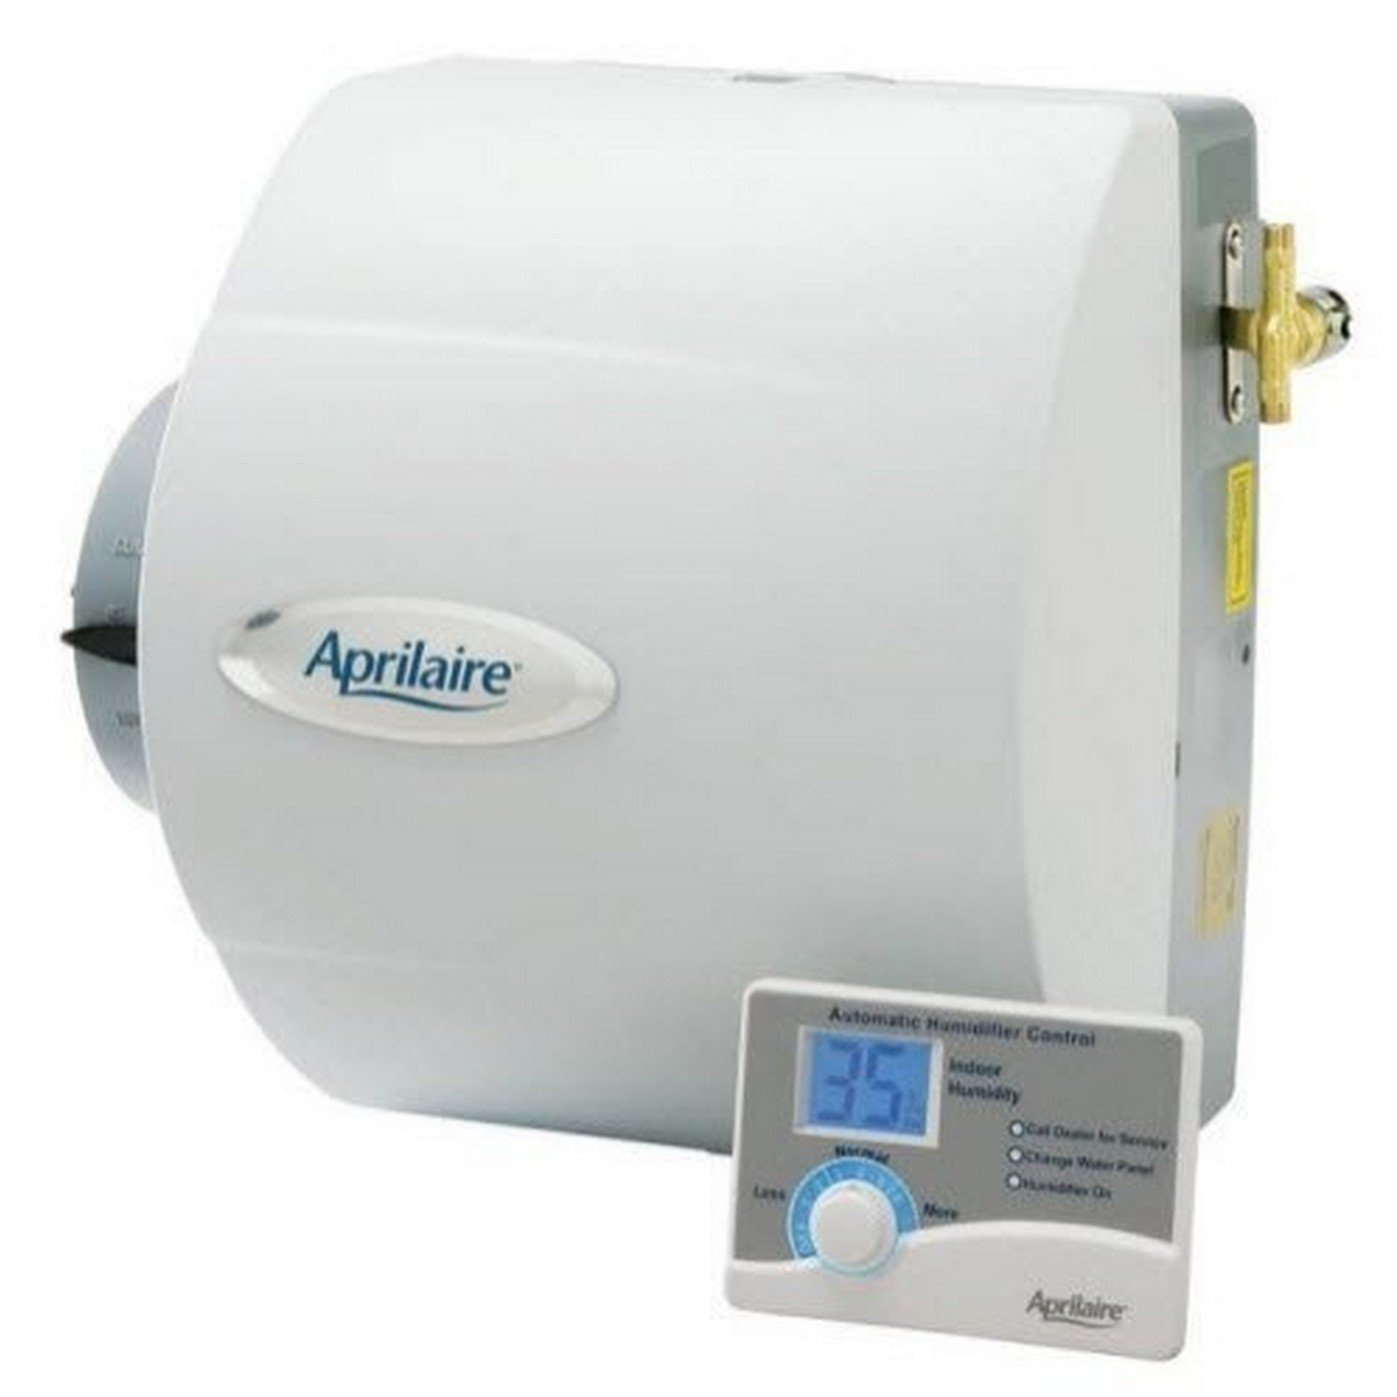 aprilaire 600 home humidifier